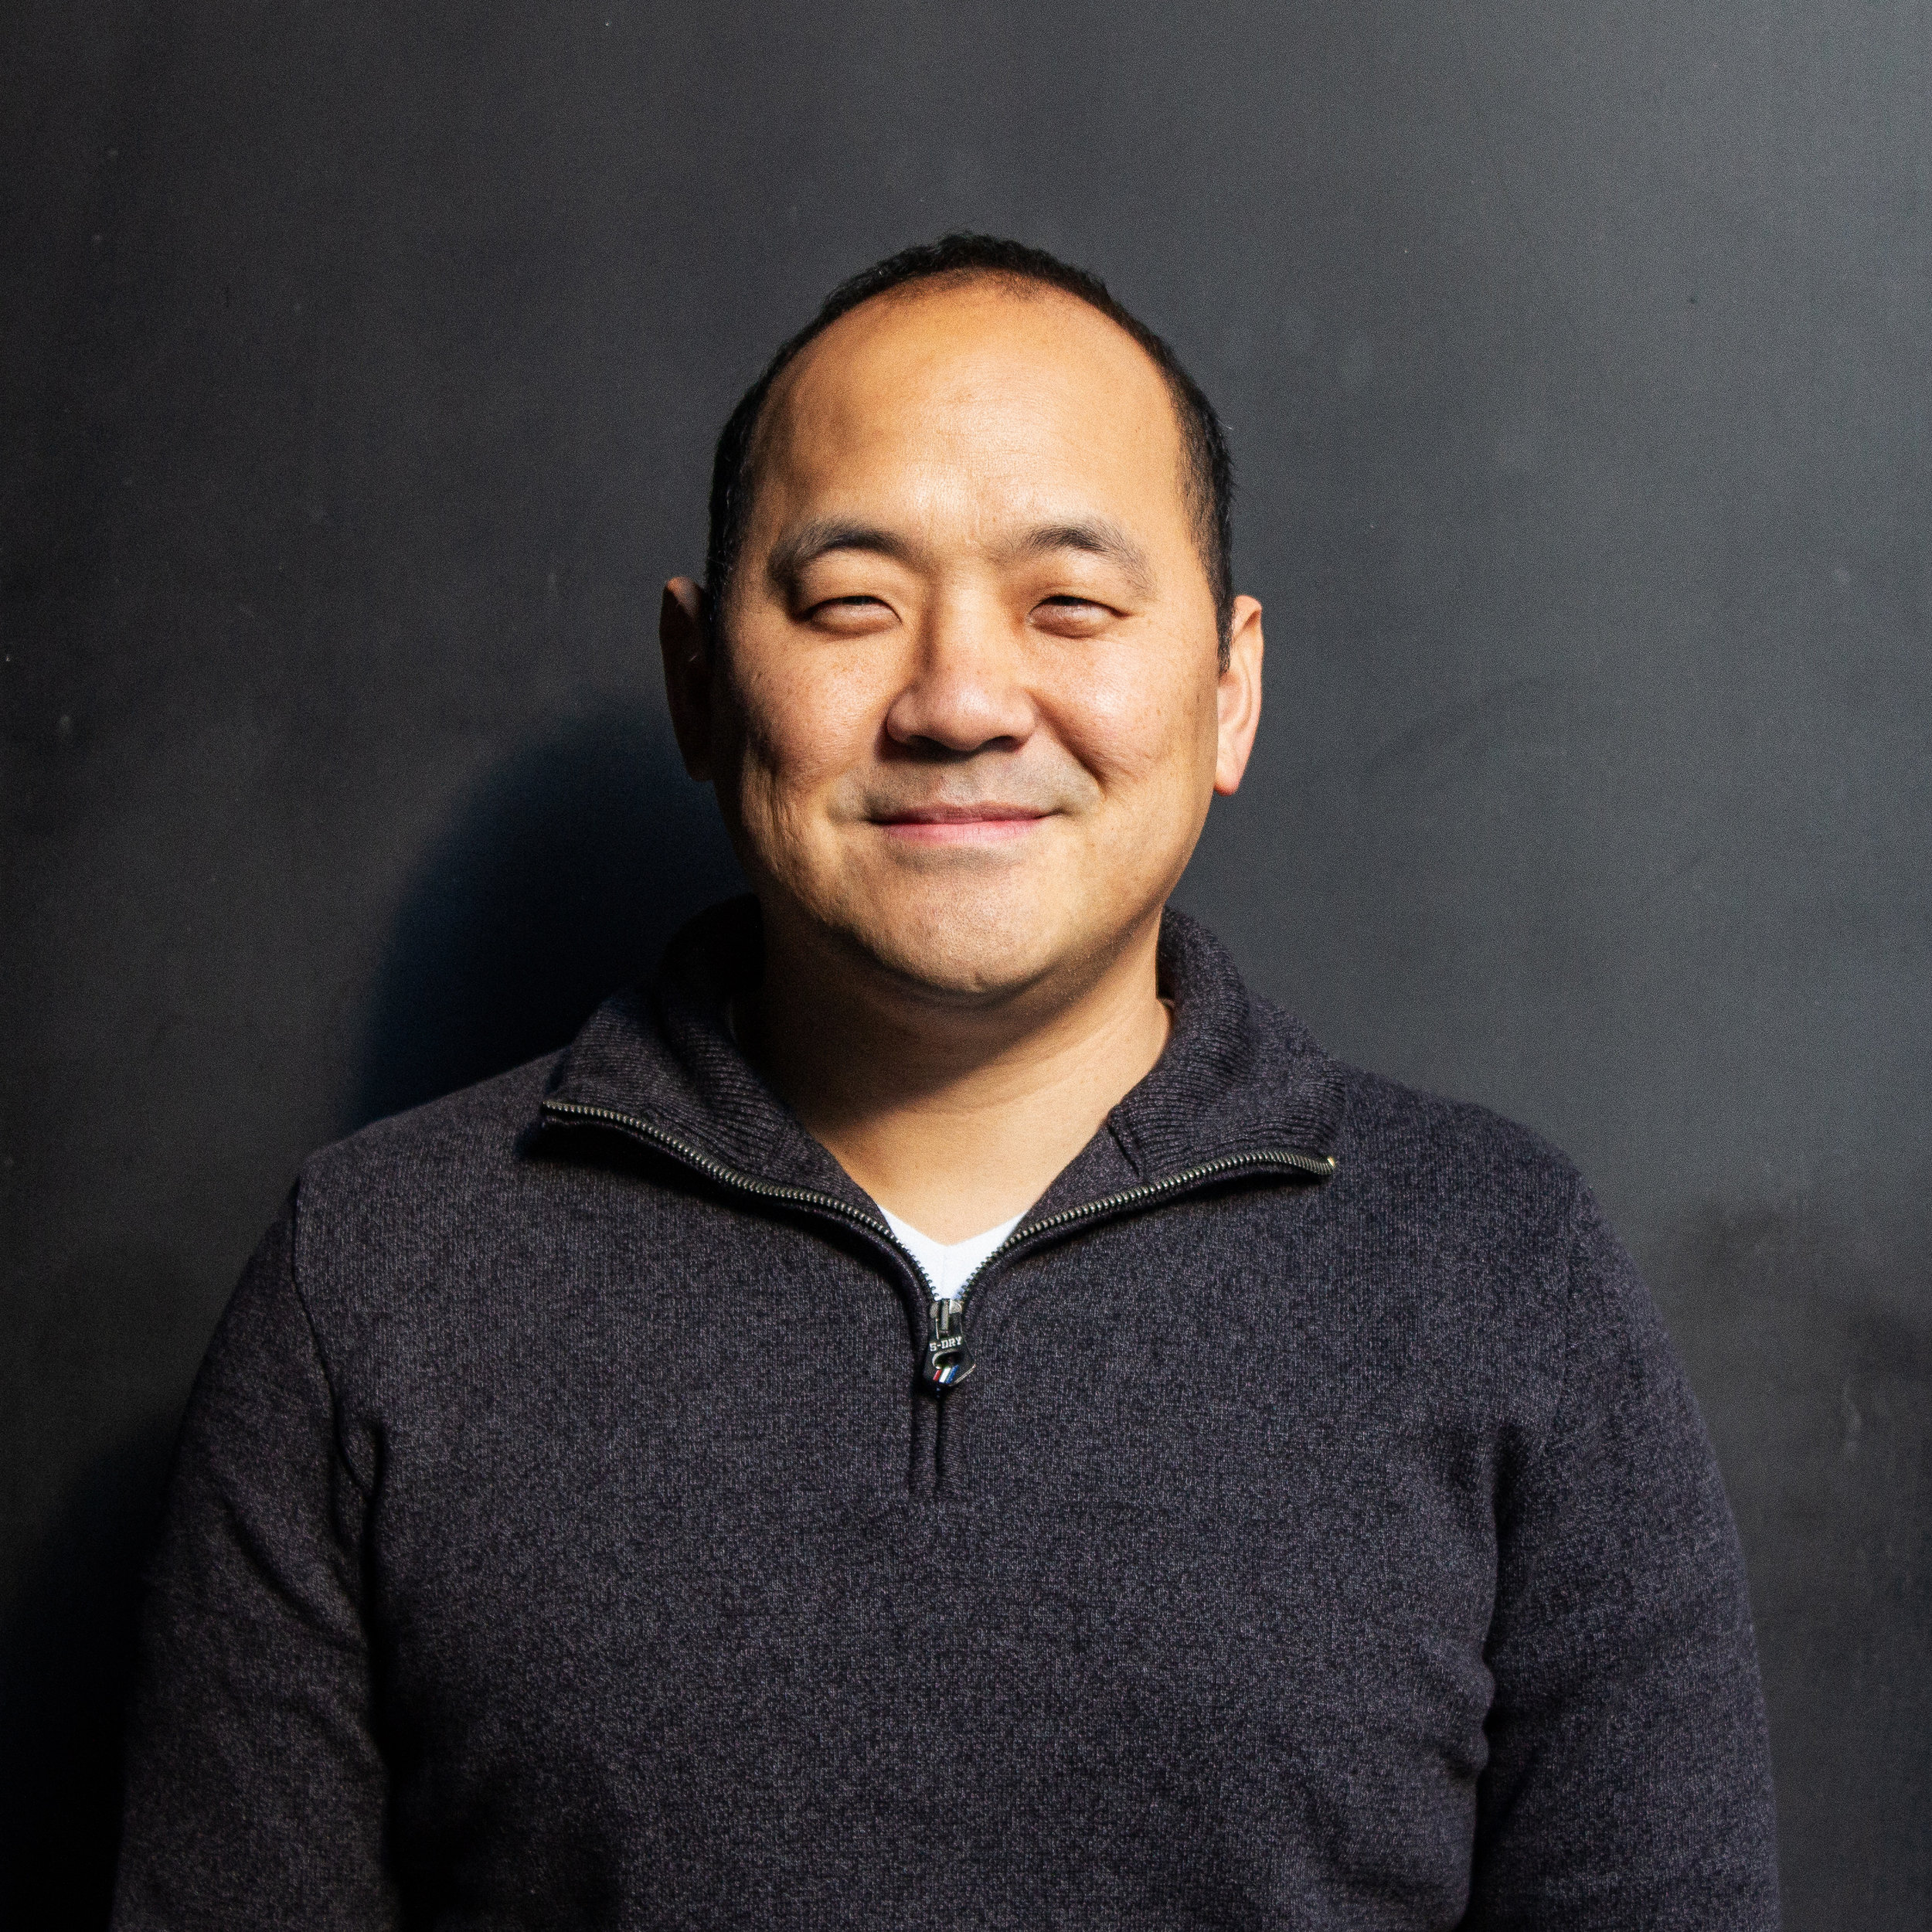 DREW HYUN - PASTOR_______Drew Hyun is the Founder and Pastor of Hope Church Midtown, as well as the Founding Pastor of Hope Church NYC, a family of diverse churches in and around NYC. Drew has also co-founded the New City Network, a network of urban churches that value multi-ethnicity, Spirit-filled ministry, emotional health, and mission.Drew graduated from UC Berkeley in California with a major in rhetoric. He later went on to graduate from Gordon-Conwell Theological Seminary in Massachusetts.He has gone on to preach in many different contexts, both in the United States and abroad. His particular passion is for community and for the transformative power that community brings. He now lives in New York City with his lovely wife Christina, and their two children, David, and Avery. His most restful sabbath involves family, sports, and naps.CONTACT